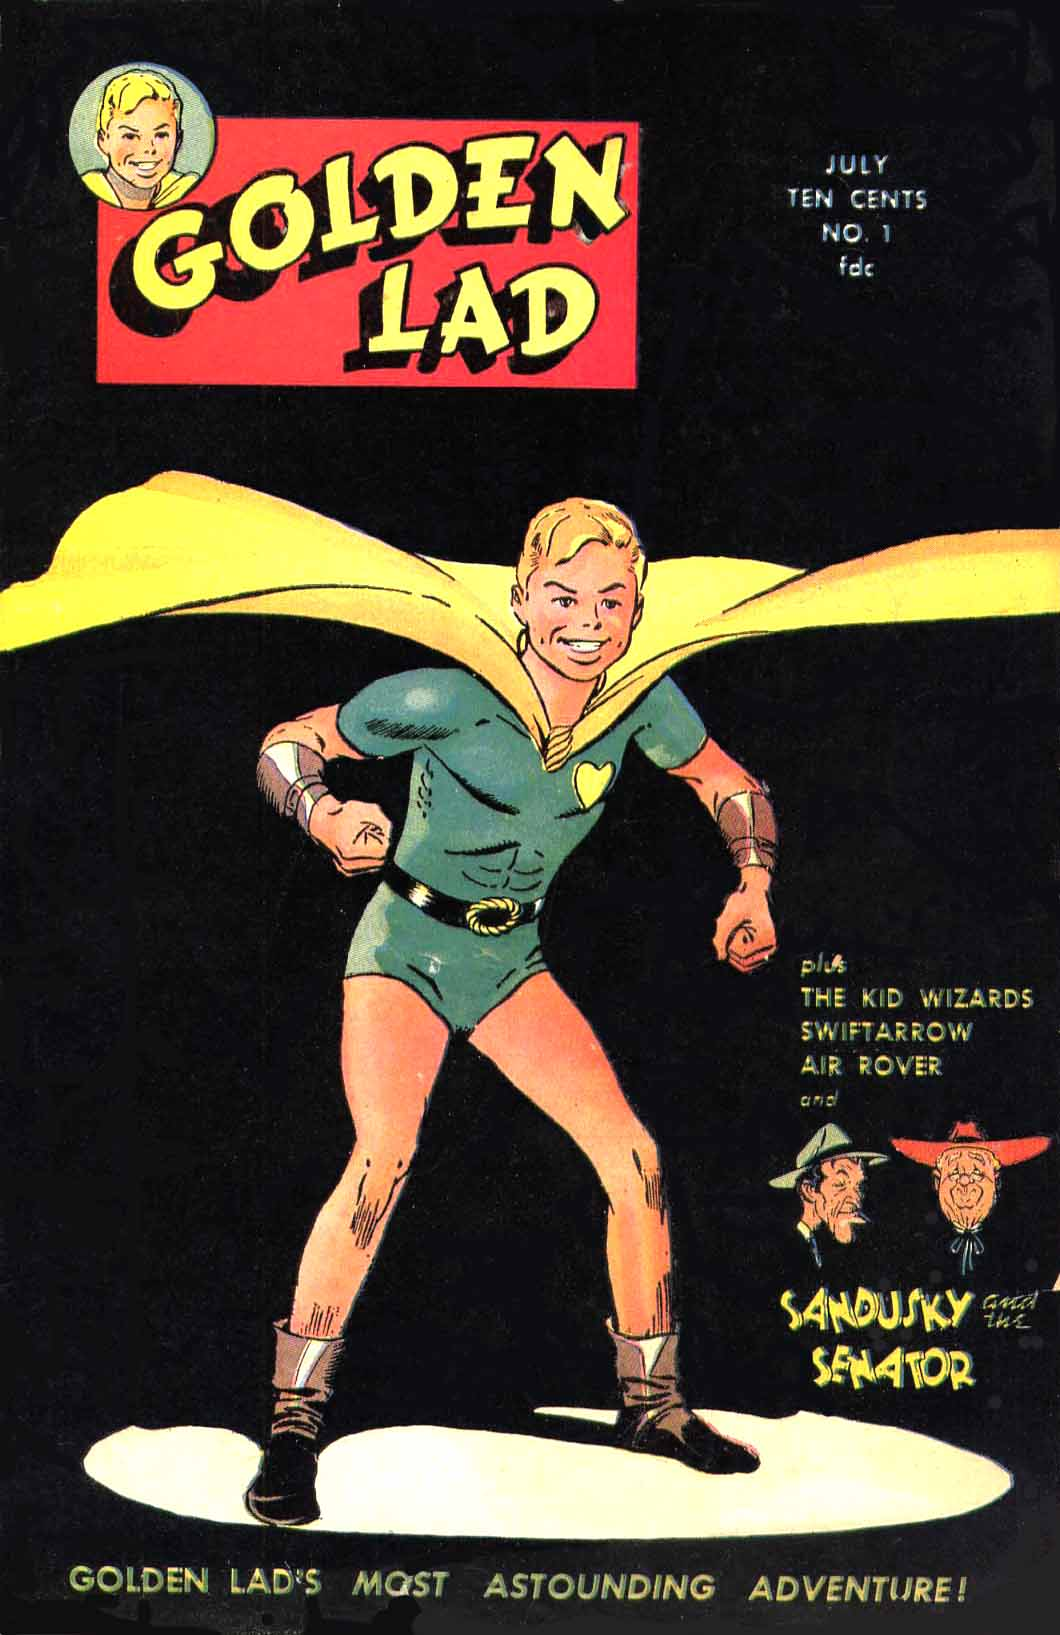 Comic Book Cover For Golden Lad Compendium v1.0